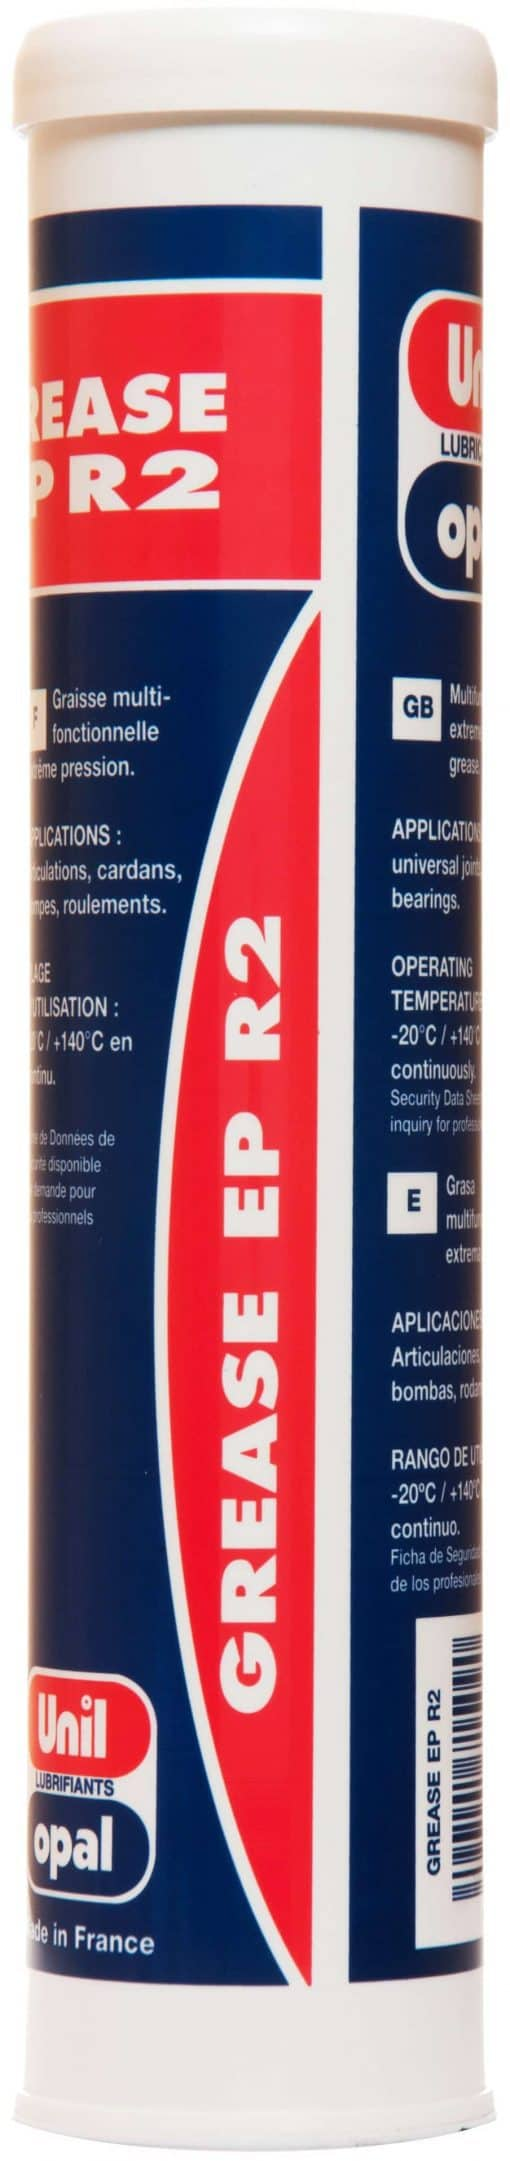 UNIL Grease EP/R2 Universal Fedt, 400 gr. Patron-0